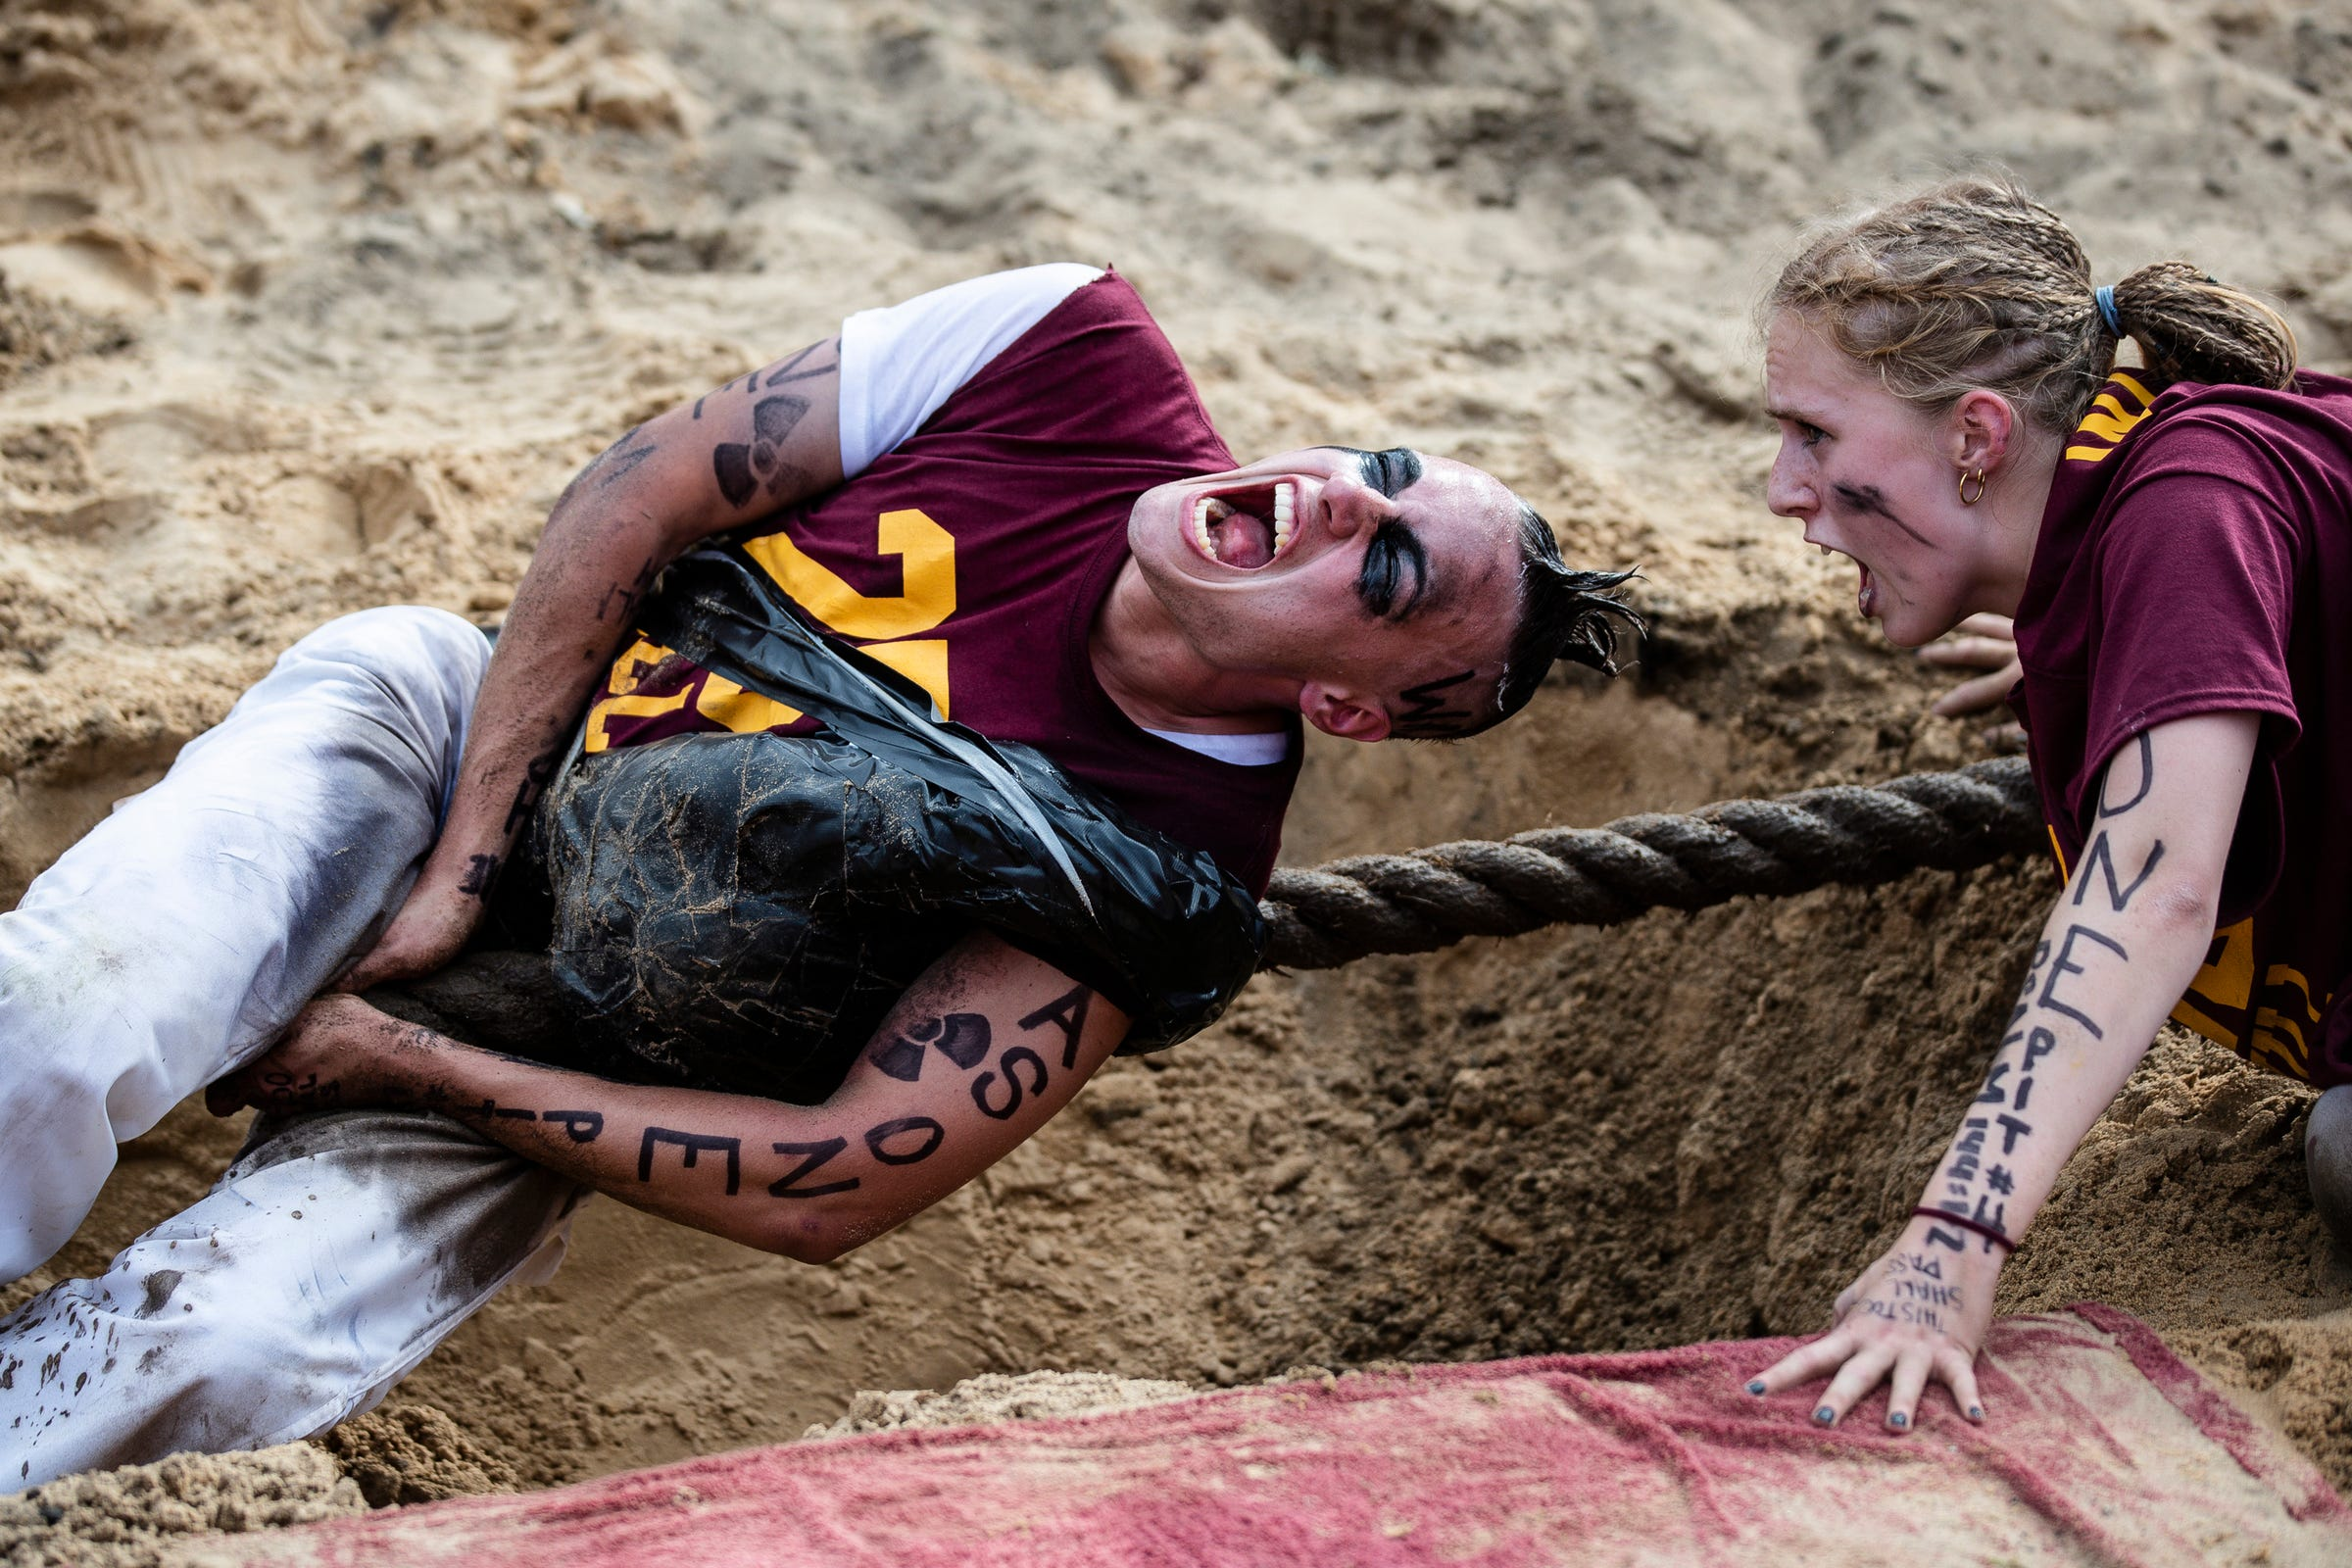 Odd year puller Jake Humbart holds on to the rope as morale booster Anna VanHuis shouts encouragement during the Pull, an annual tug-of-war between the freshmen and sophomore classes at Hope College in Holland on Saturday, Oct. 2, 2021.